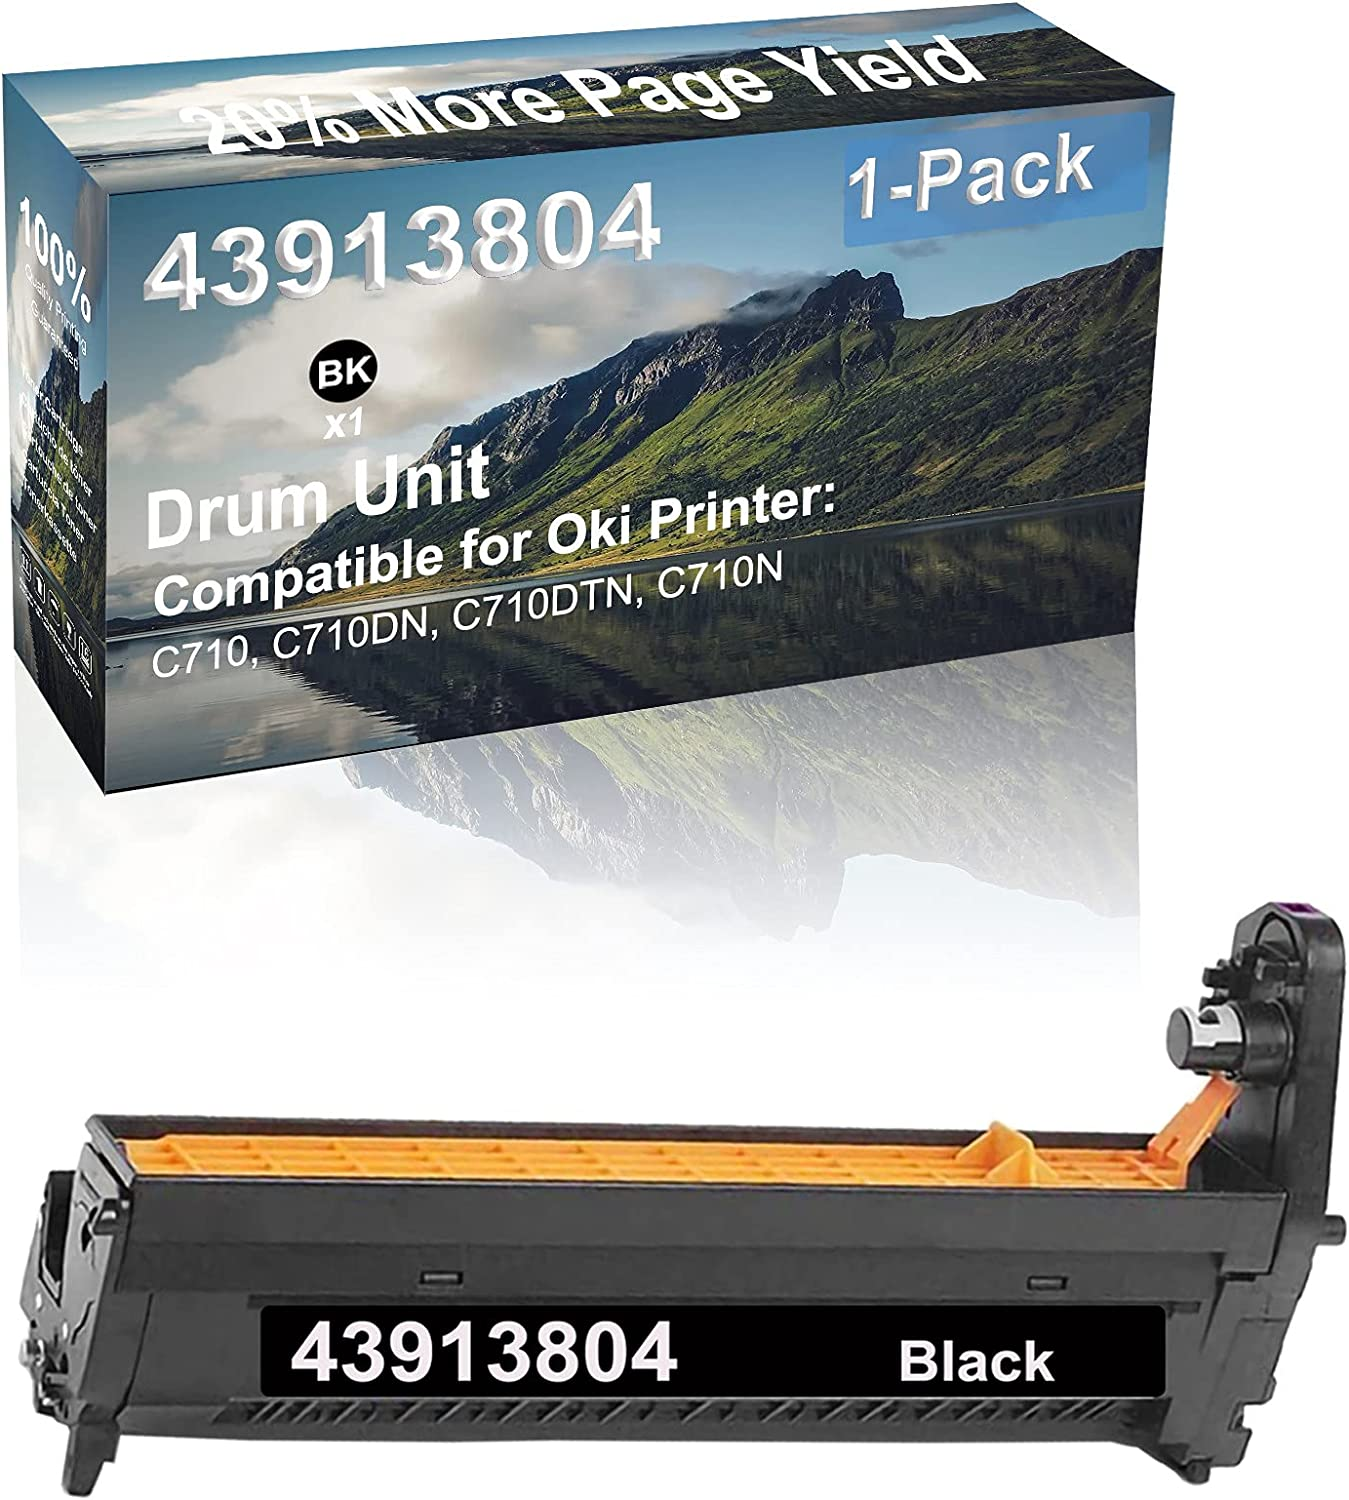 1-Pack (Black) Compatible High Capacity 43913804 Drum Unit Used for Oki C710, C710DN, C710DTN, C710N Printer